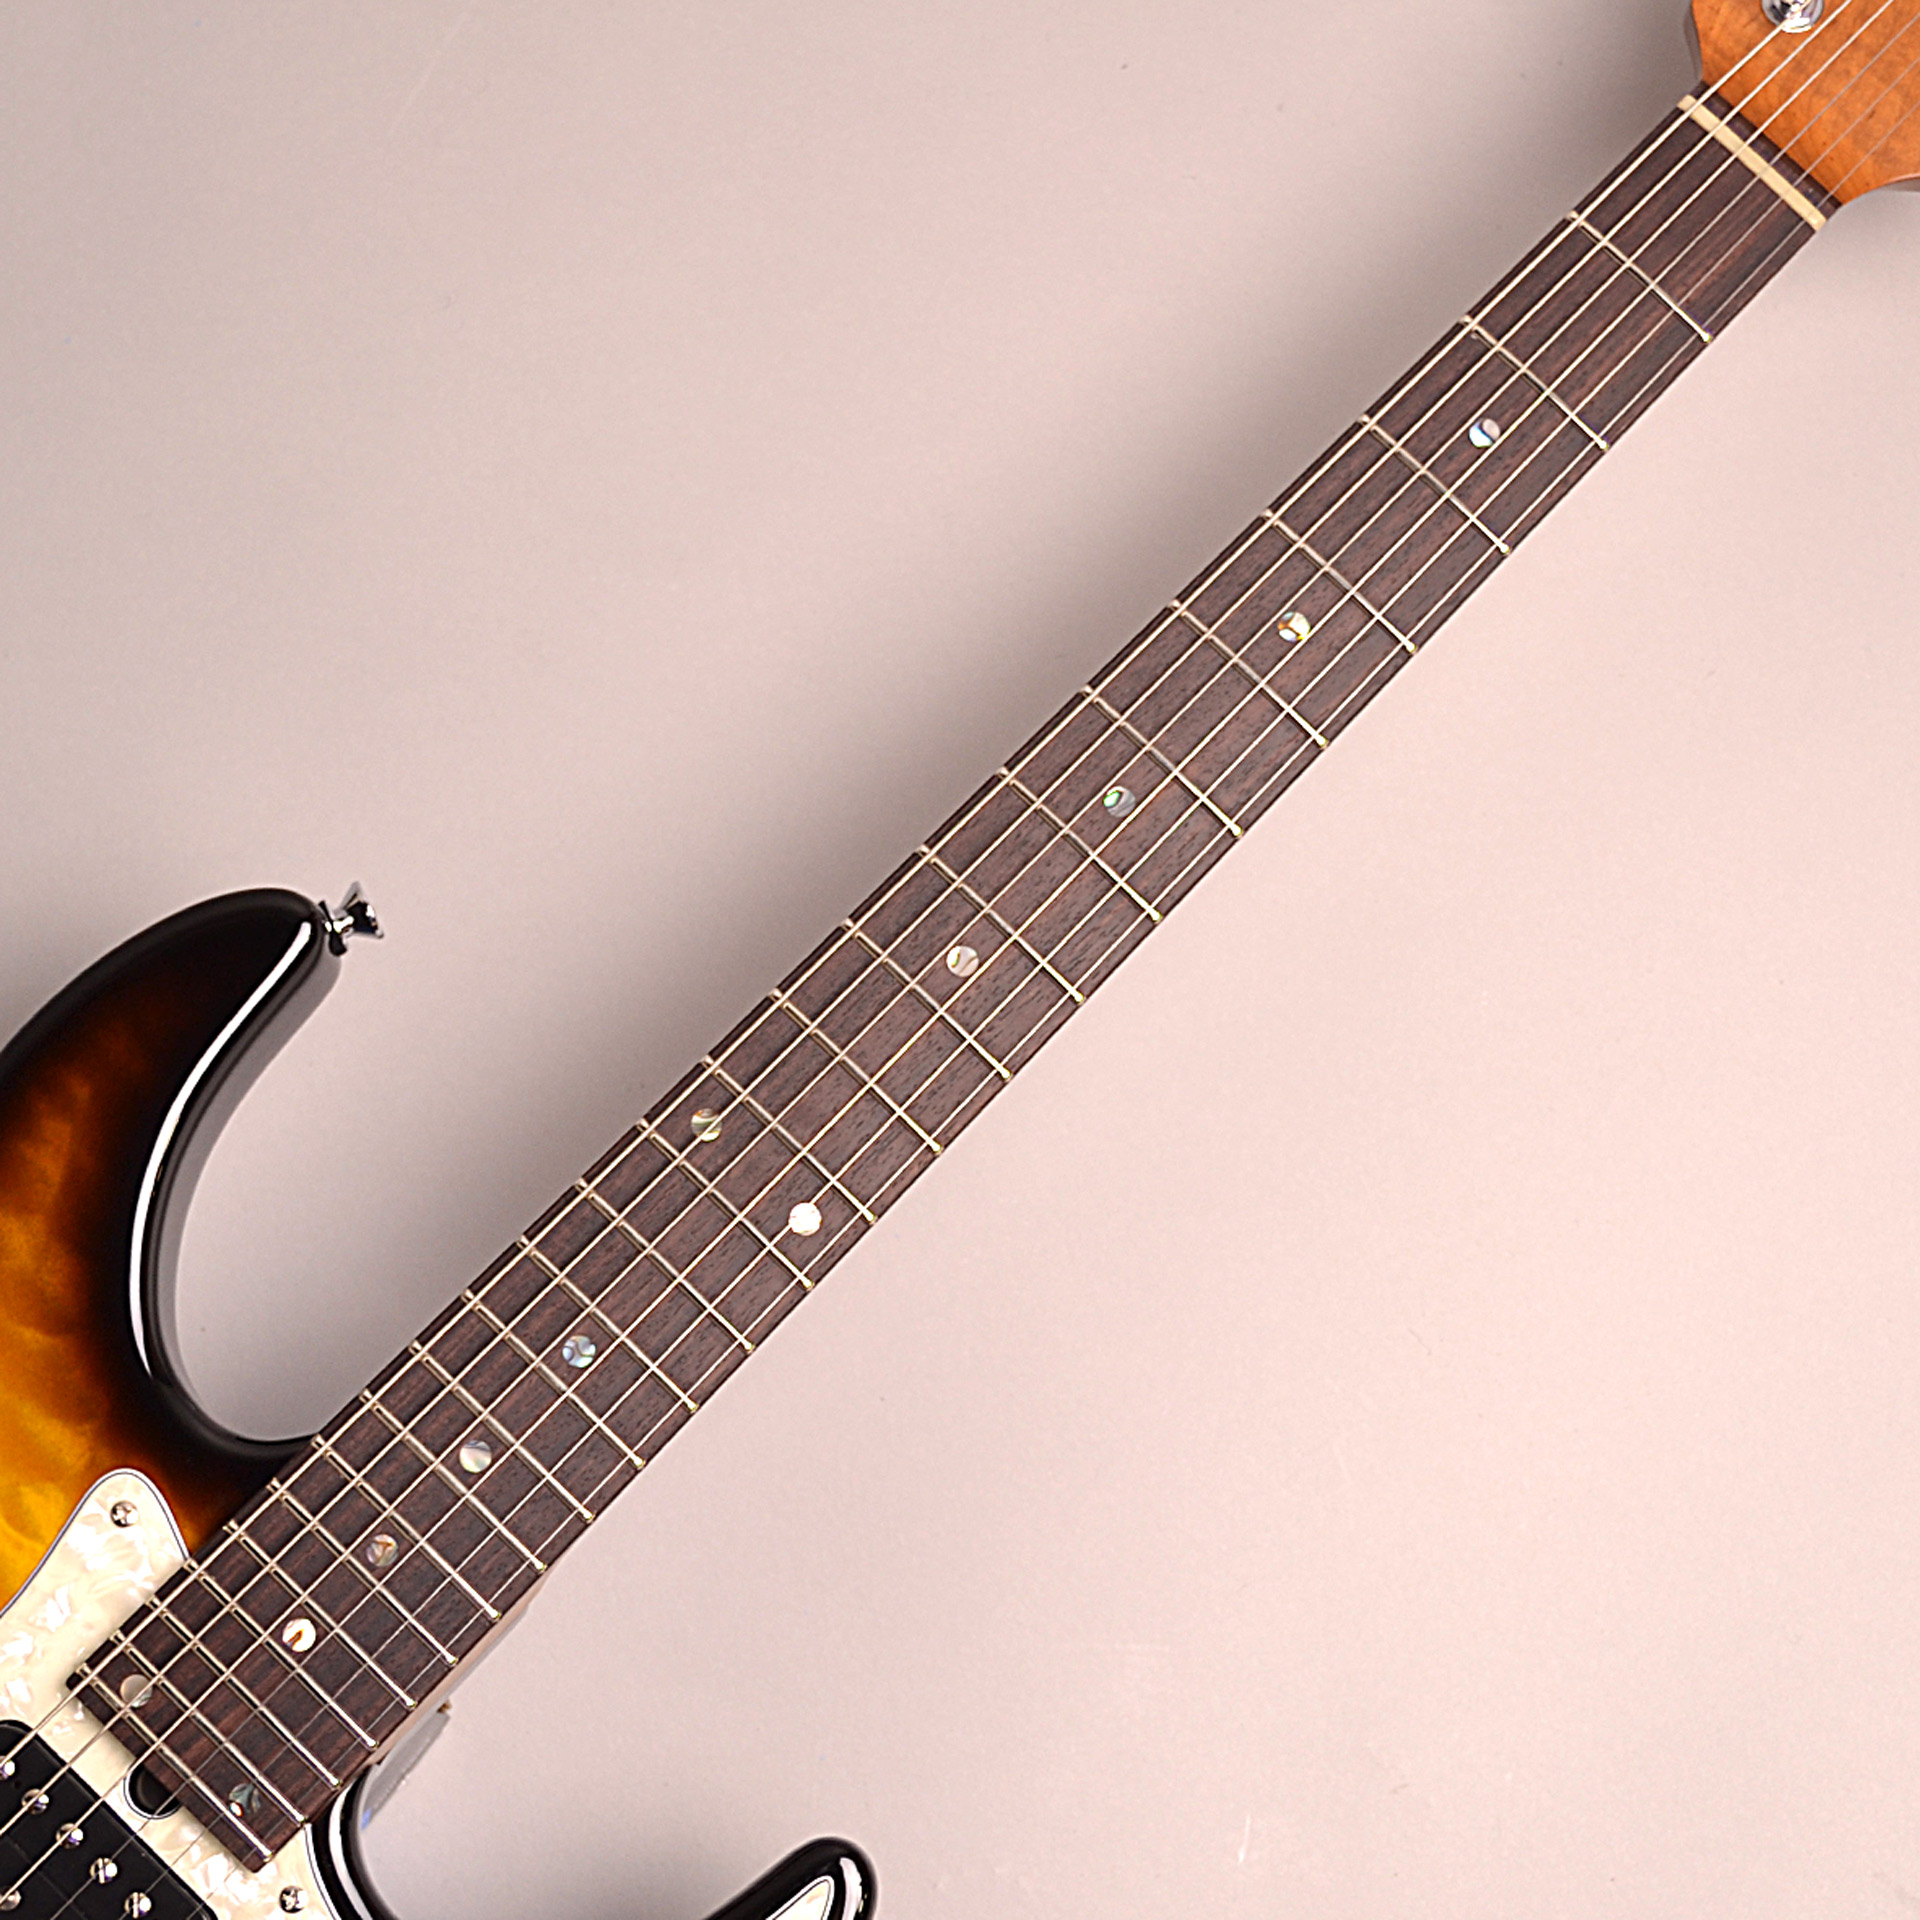 DST-Classic24F Roasted Flame Maple Neckの指板画像